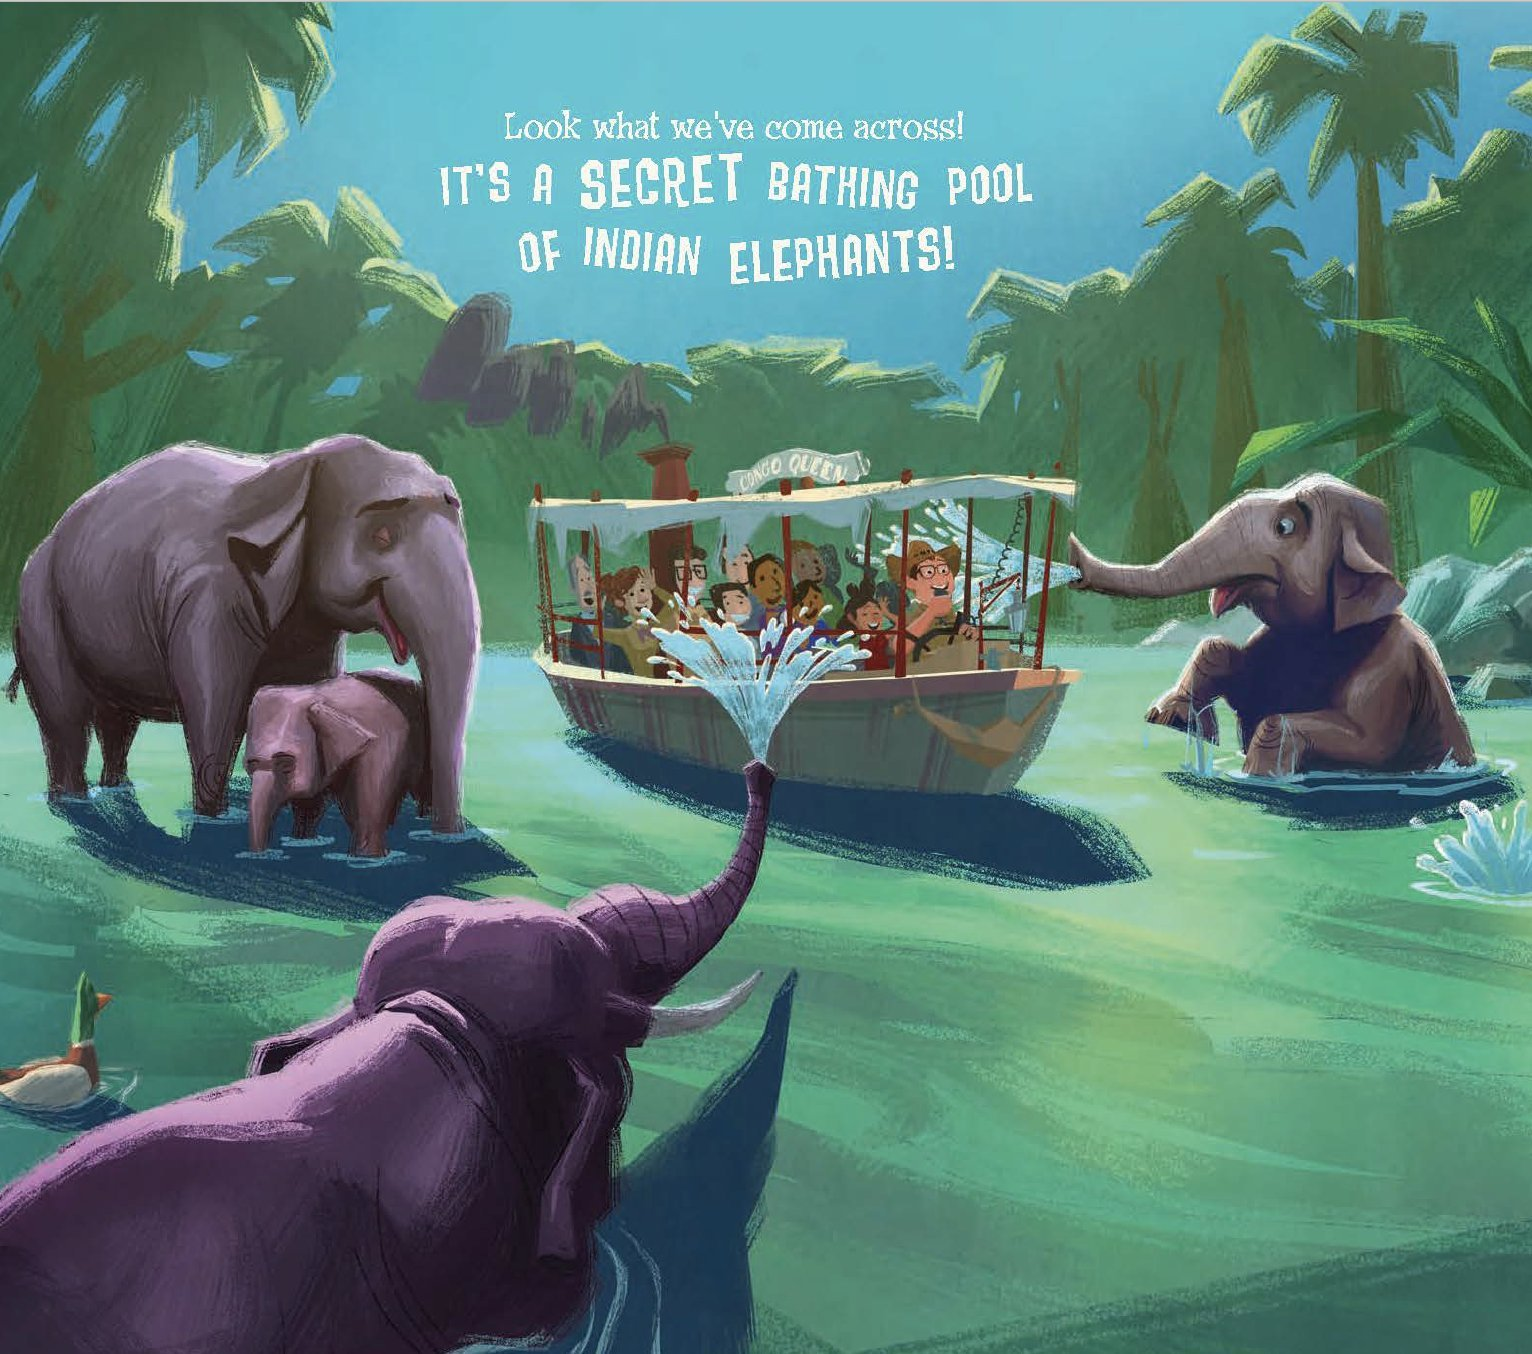 Disney Parks Presents: Jungle Cruise: Purchase Includes a CD with Narration! by Disney Press (Image #4)